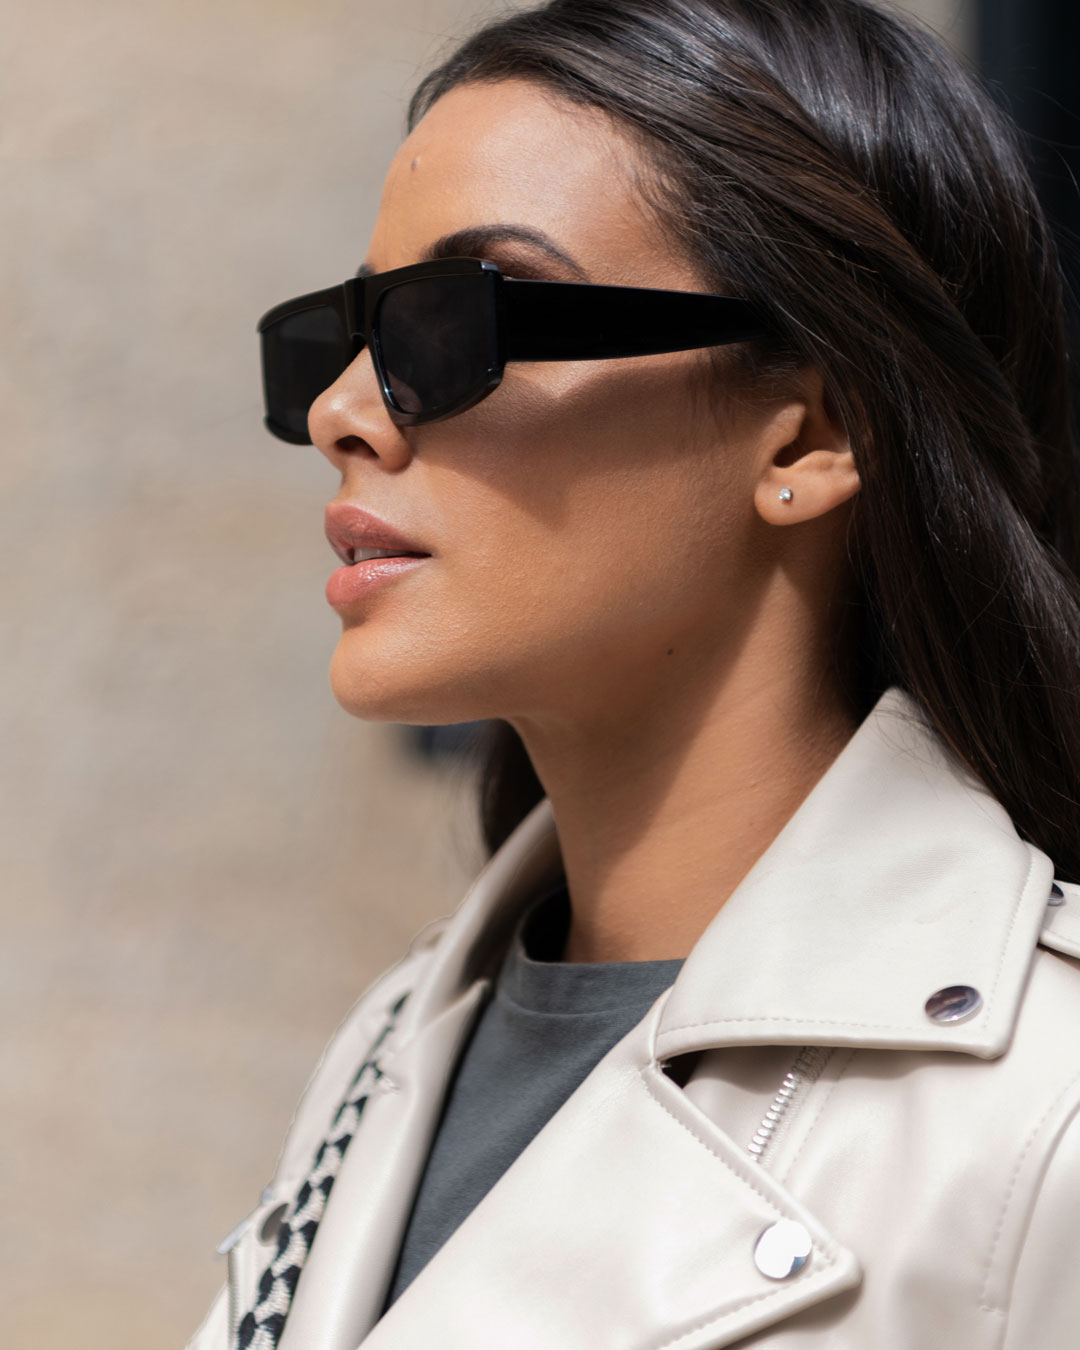 rectangle black sunglasses on a woman